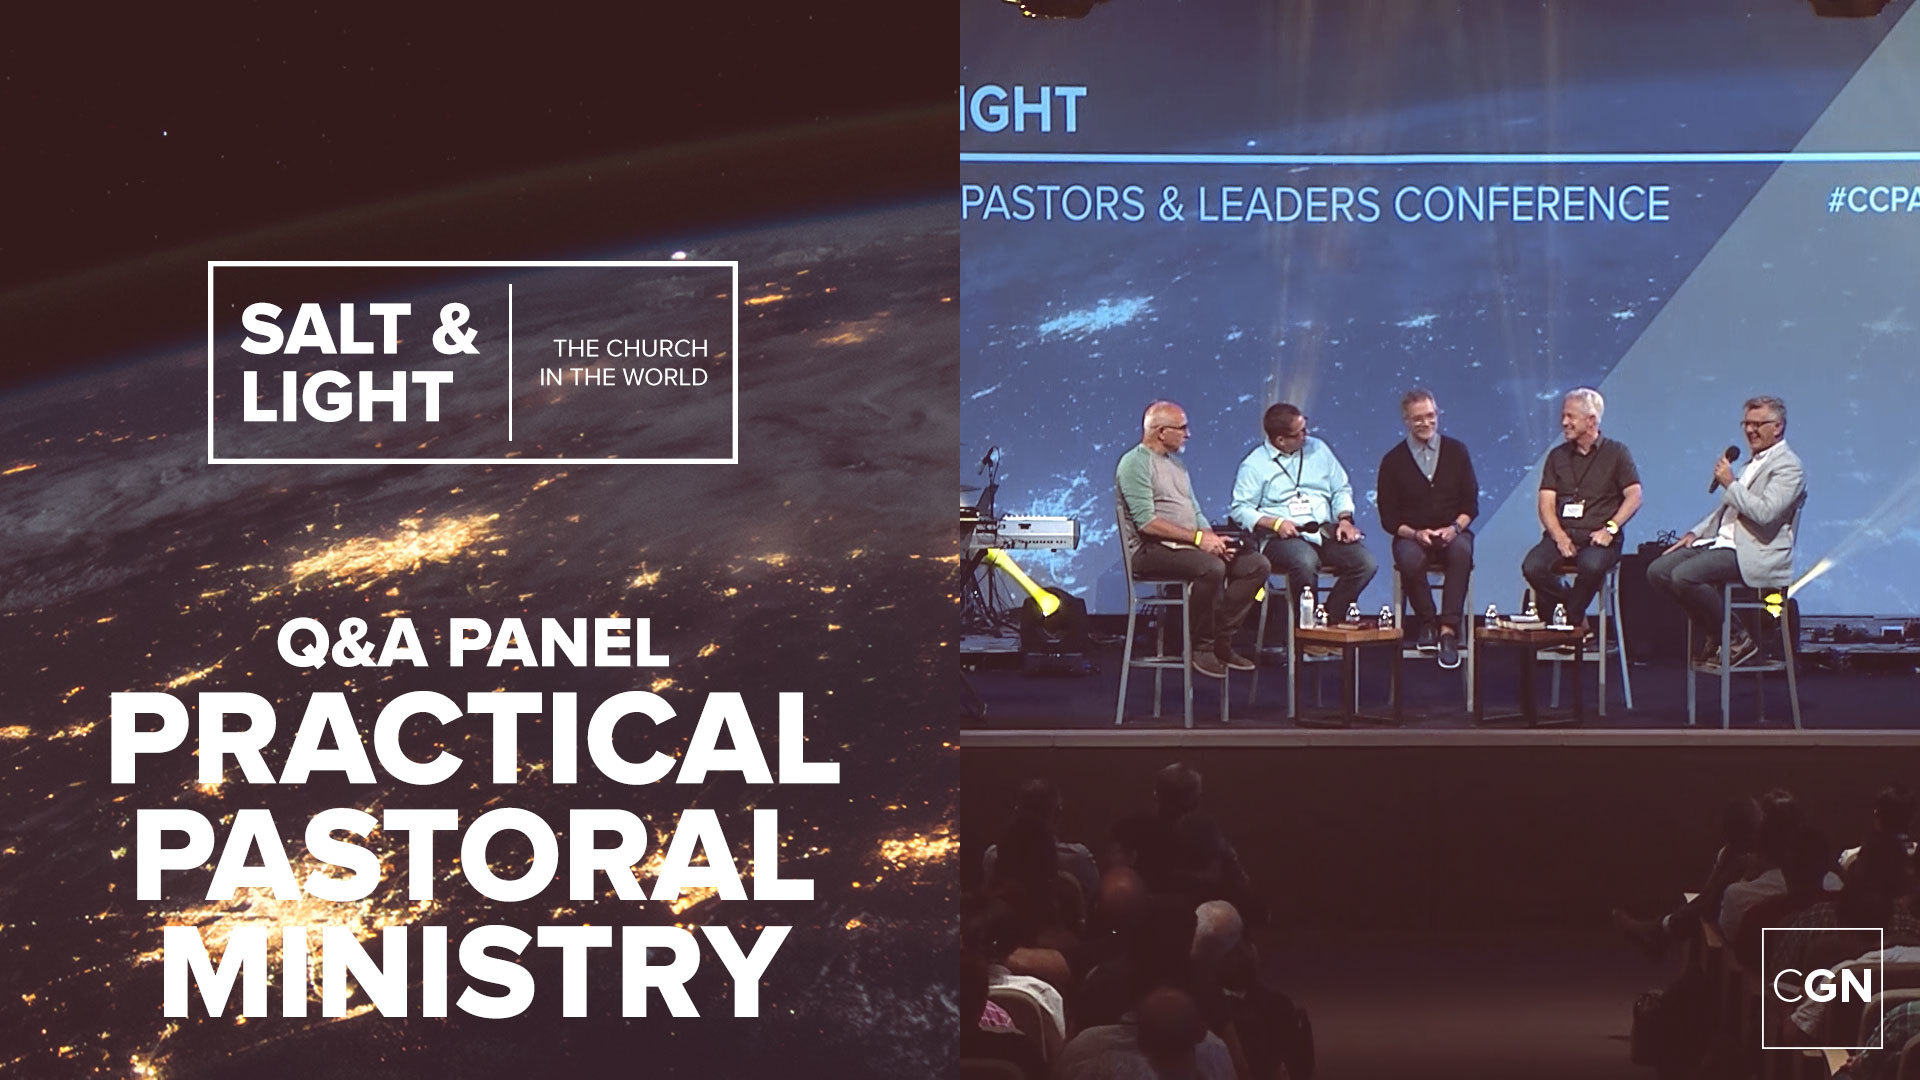 Q&A Panel: Practical Pastoral Ministry - Ray Bentley, Wayne Taylor, Brian Brodersen, Dr. Paul Tripp, Troy Warner